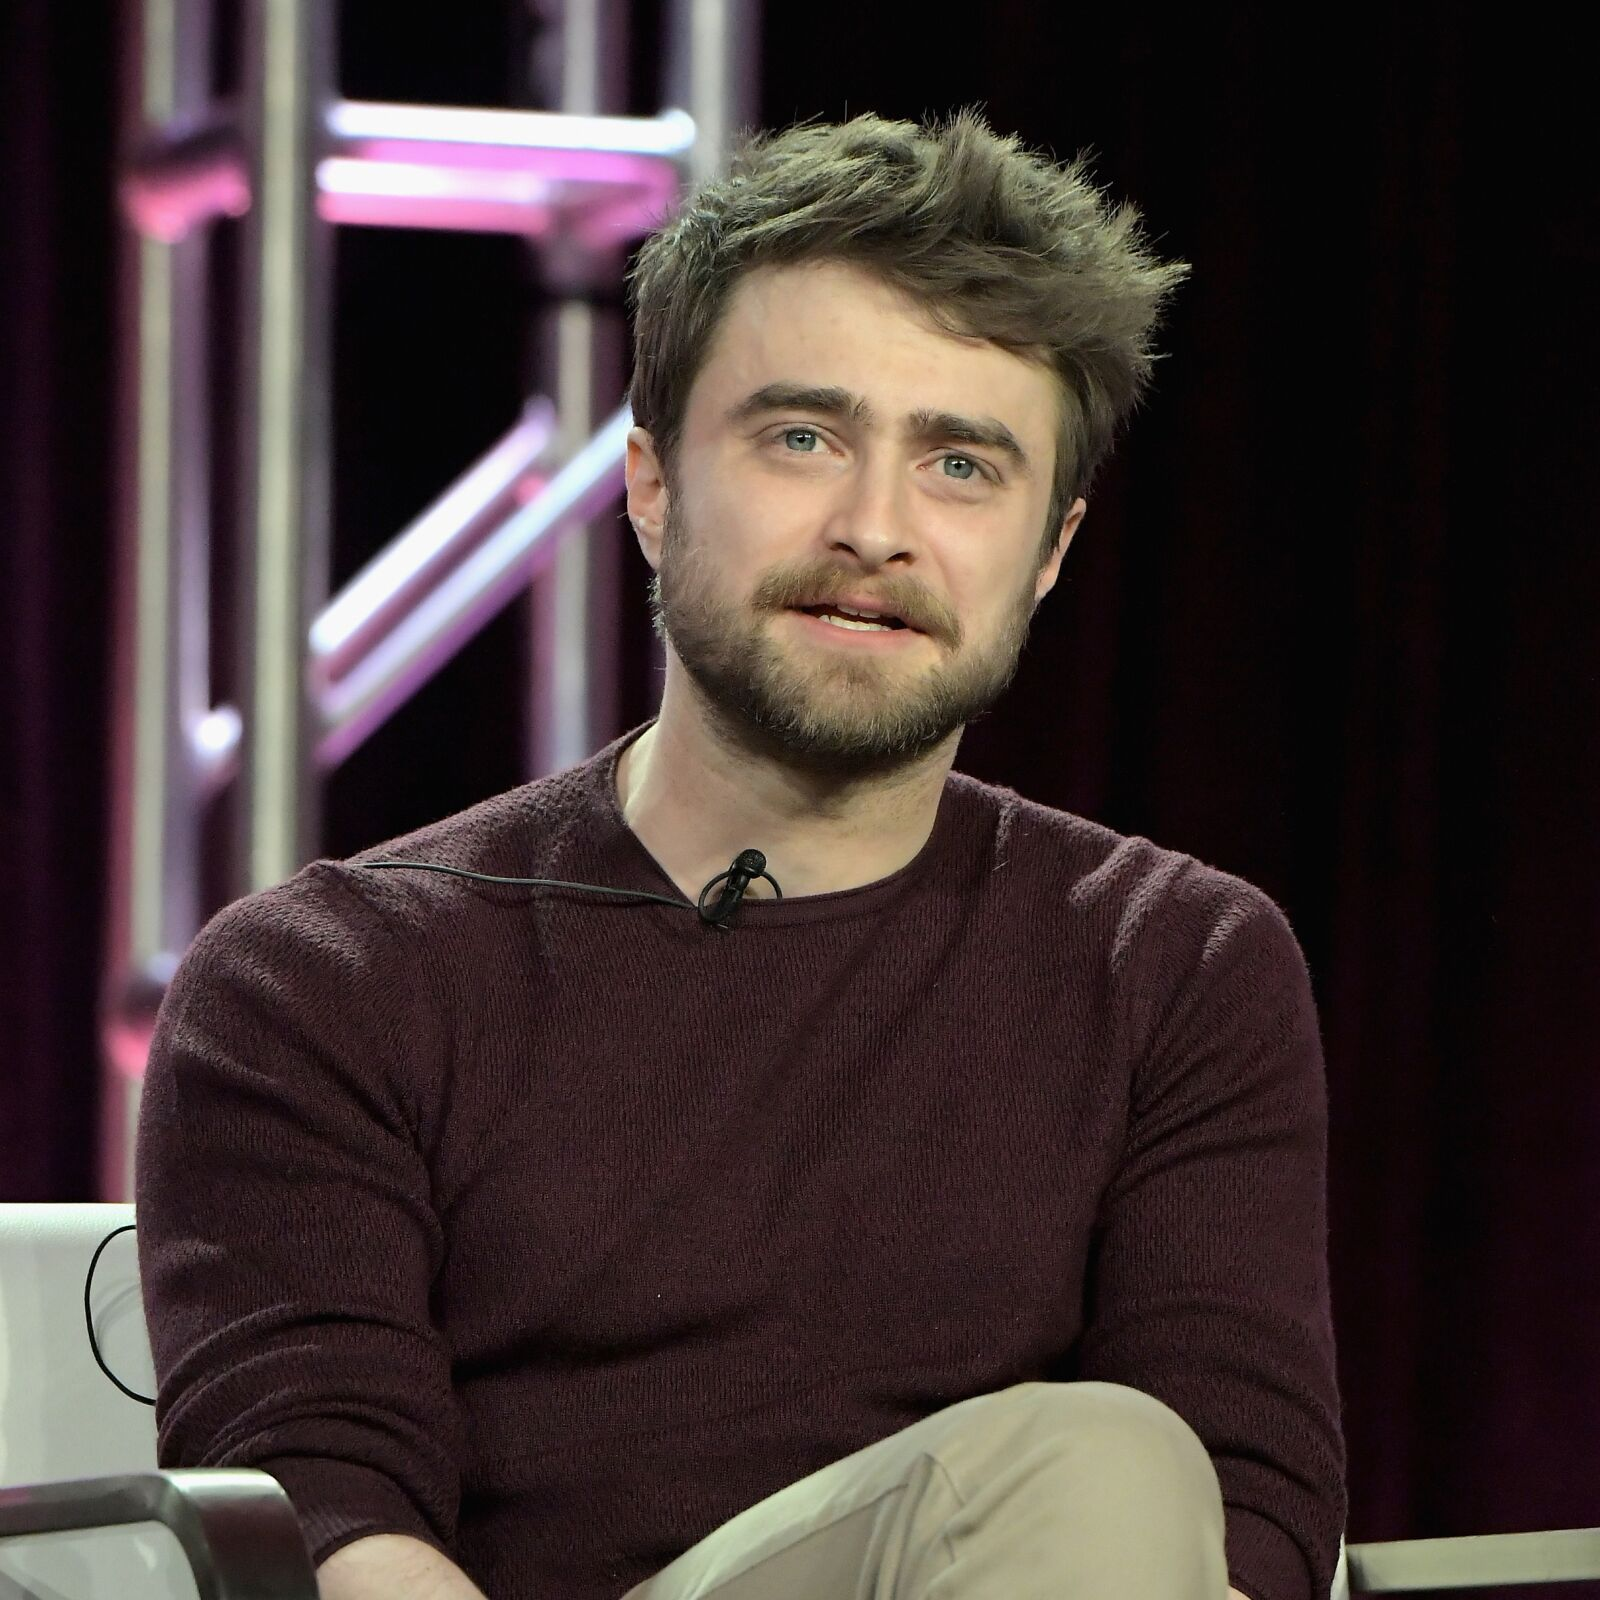 You probably won't be able to guess Daniel Radcliffe's favorite Harry Potter movie